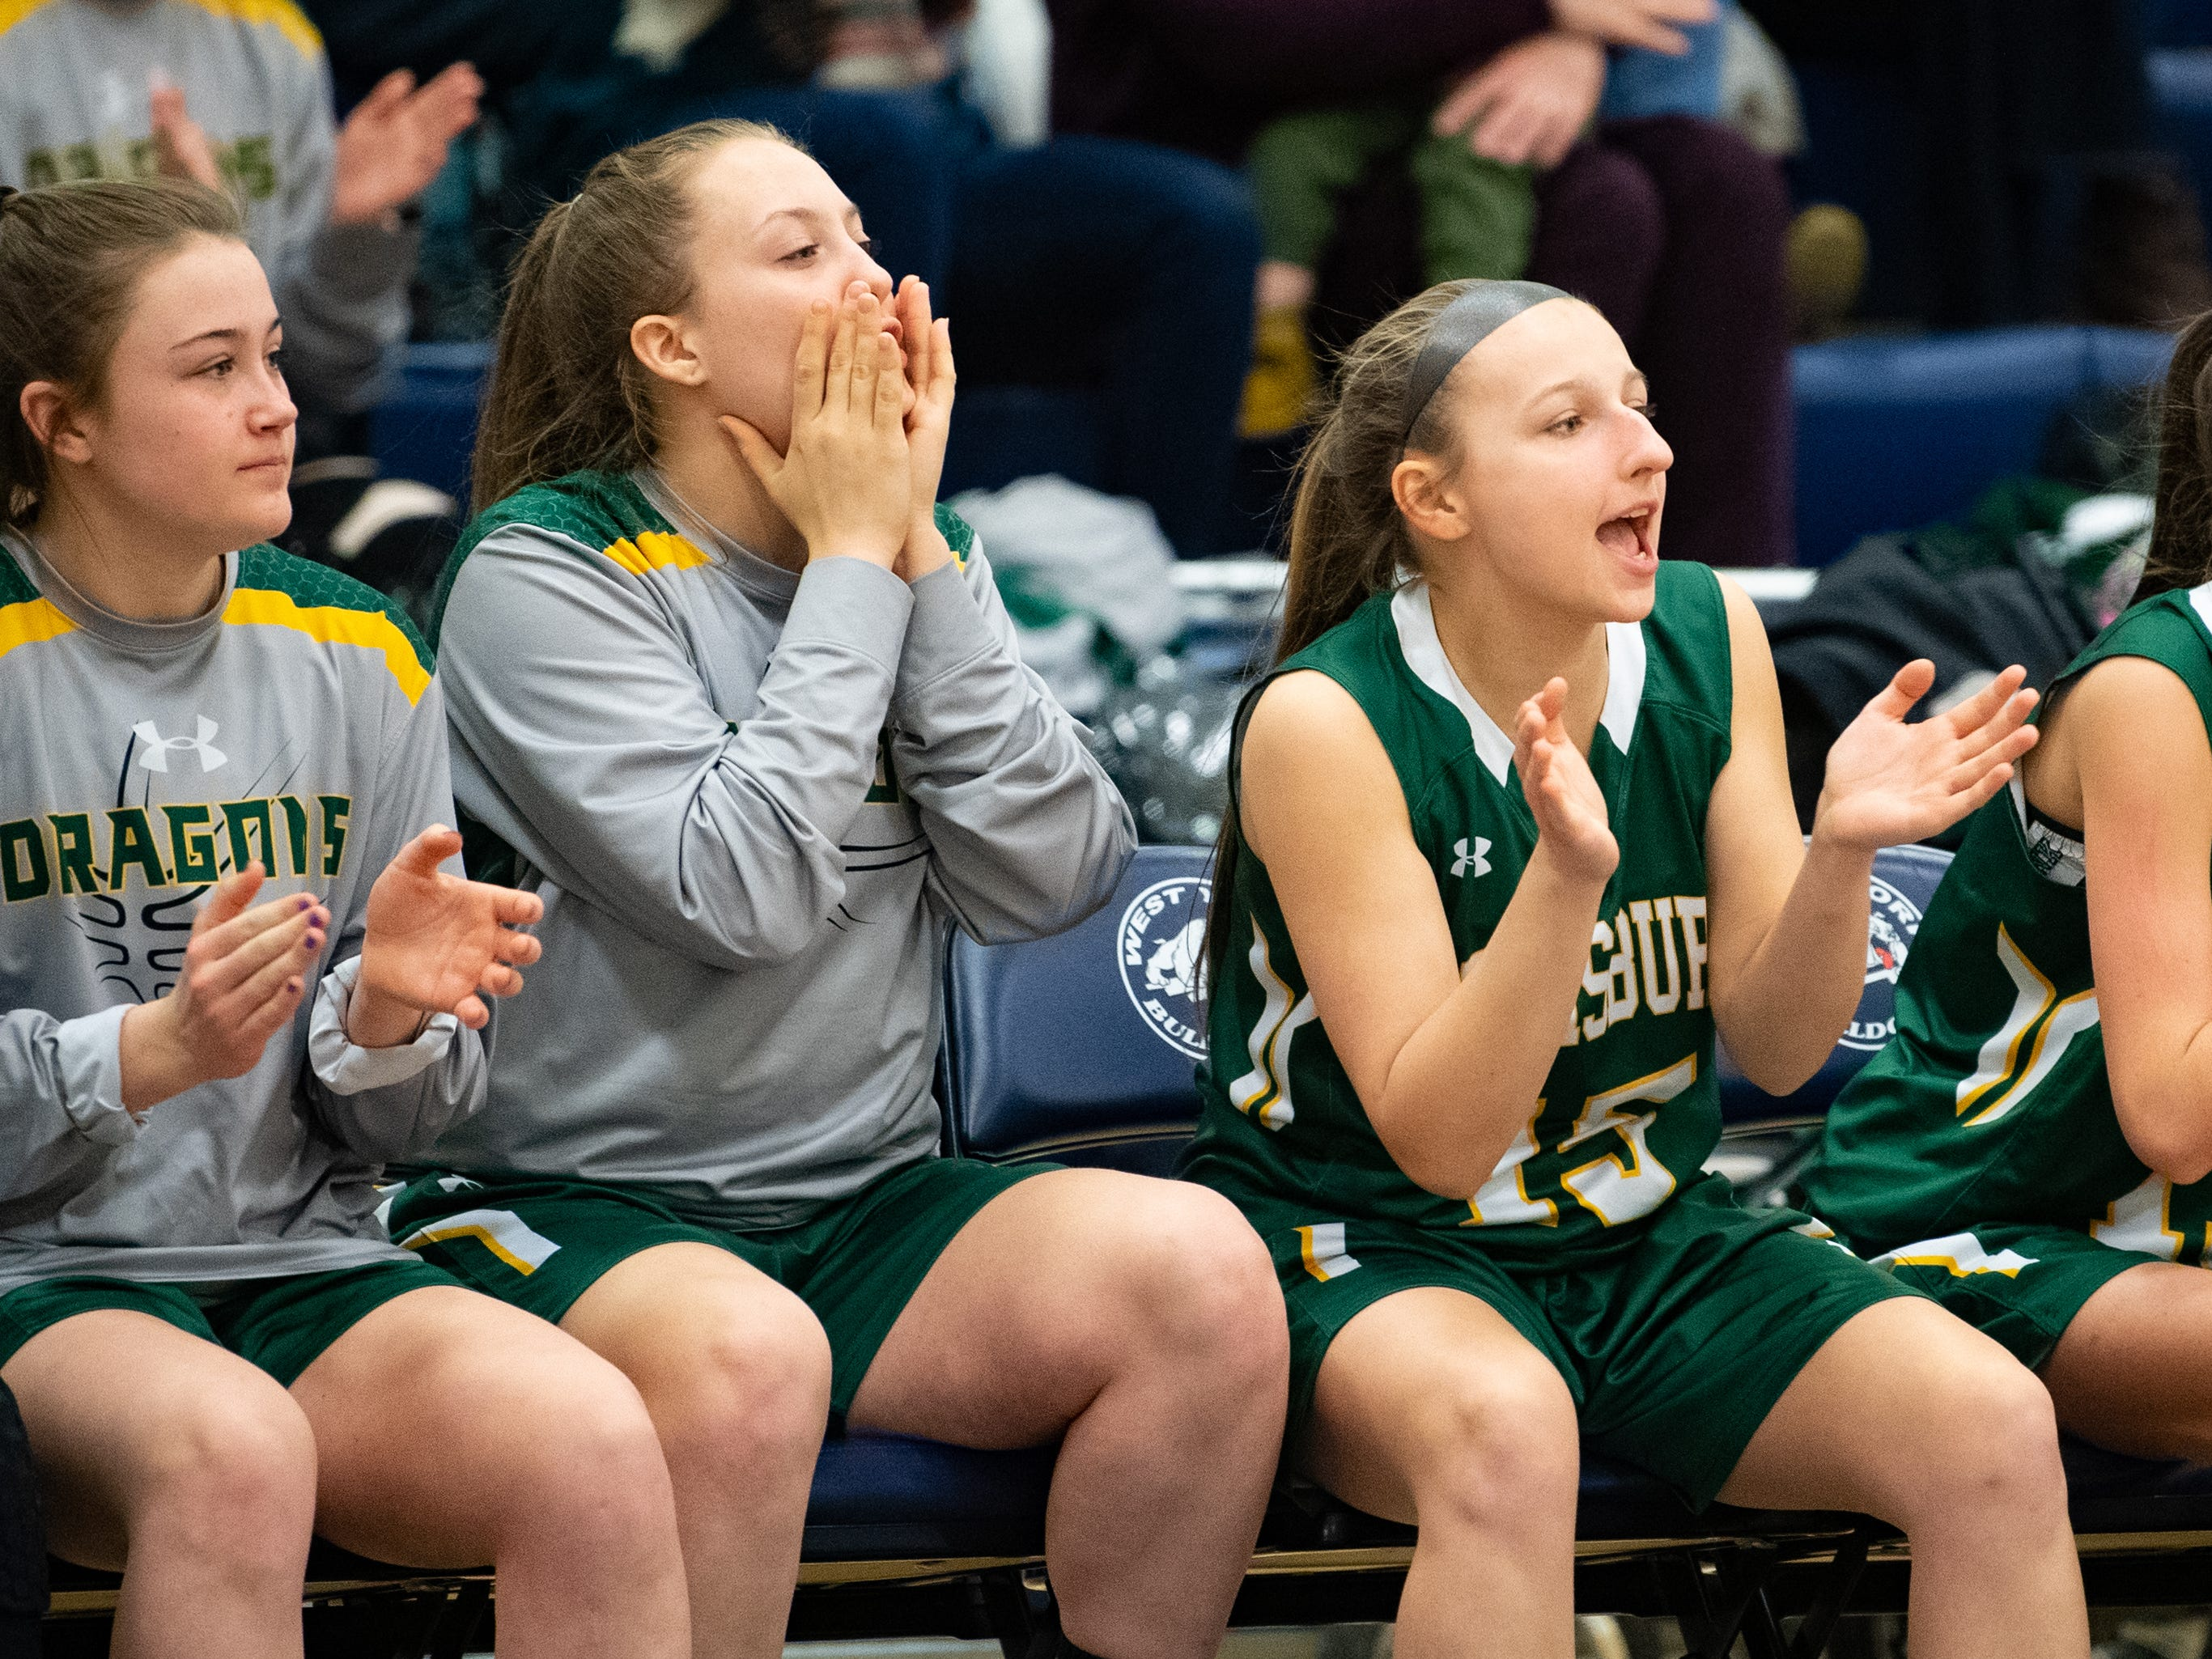 Lewisburg's bench cheers their teammates on during the PIAA first round girls' basketball game between Delone Catholic and Lewisburg Area Friday, March 8, 2019 at West York Area High School. The Squires defeated the Green Dragons 77 to 36.